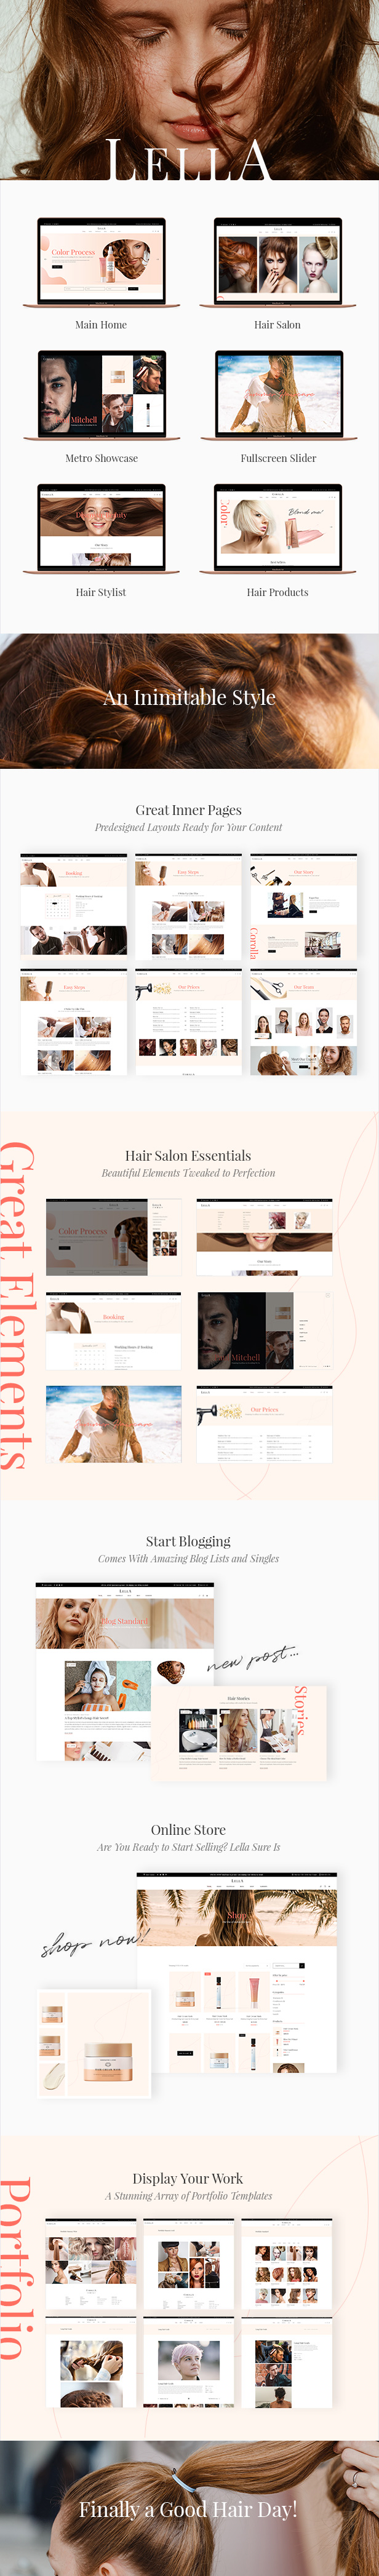 Lella - Hairdresser and Beauty Salon Theme - 1